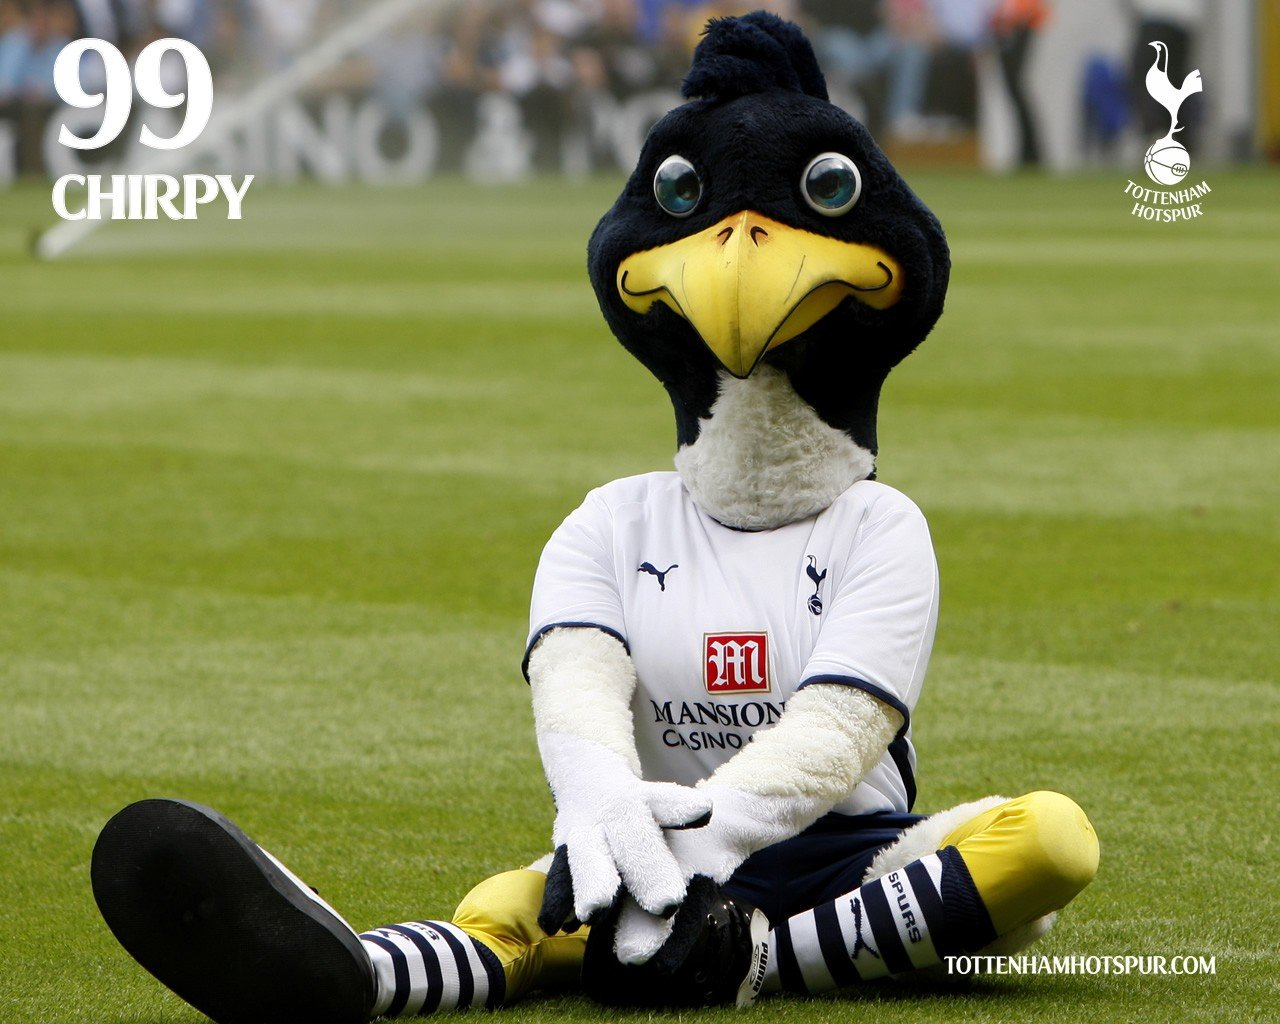 Eyes Blue Eyes Chirpy Tottenham Hotspur Tottenham Mascot Photography Premier League Soccer Pitches Soccer Coys Spurs Hd Wallpapers Desktop And Mobile Images Photos